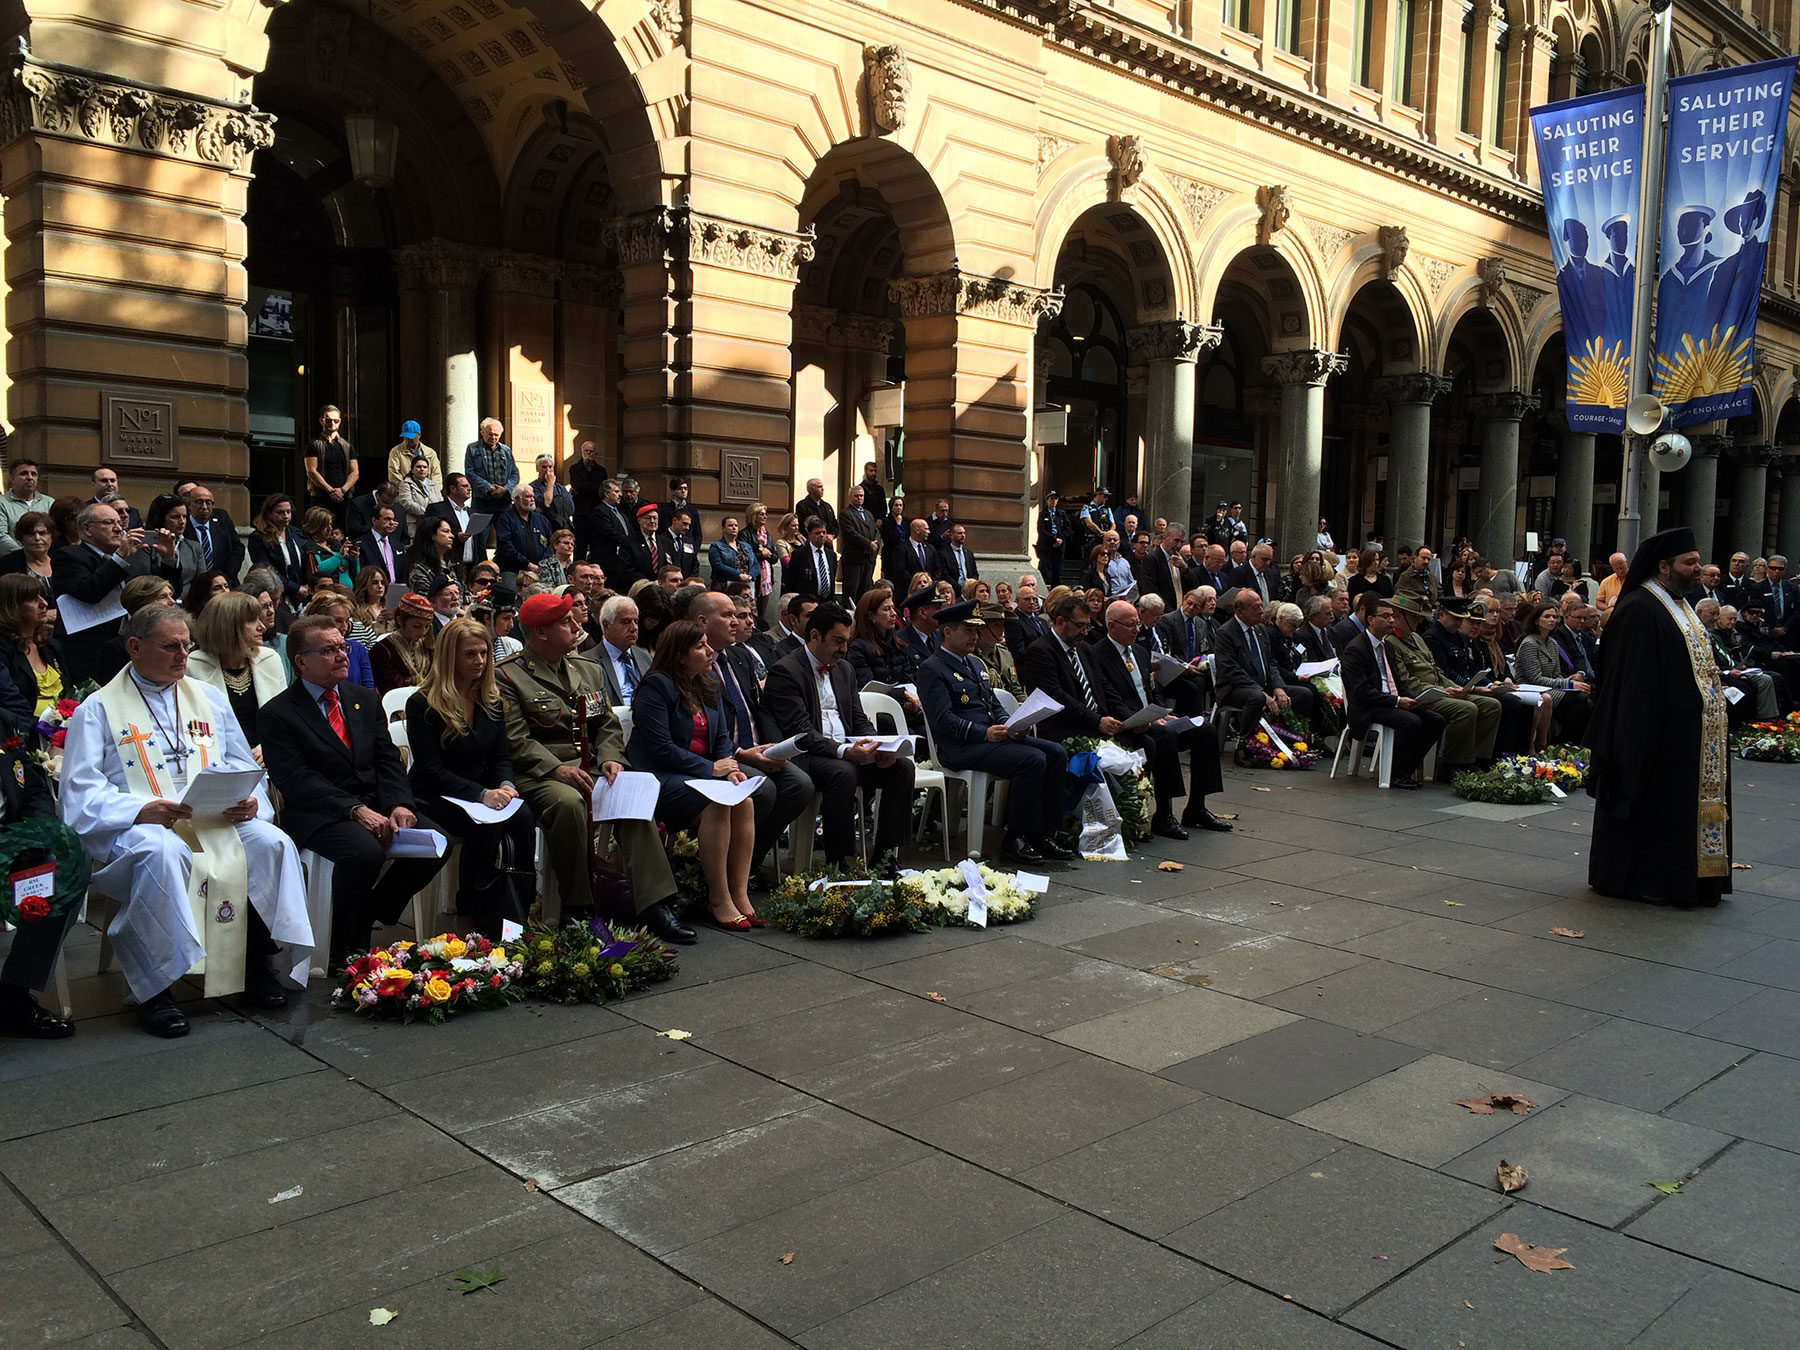 Martin Place Cenotaph Wreath Laying Ceremony. May 2015